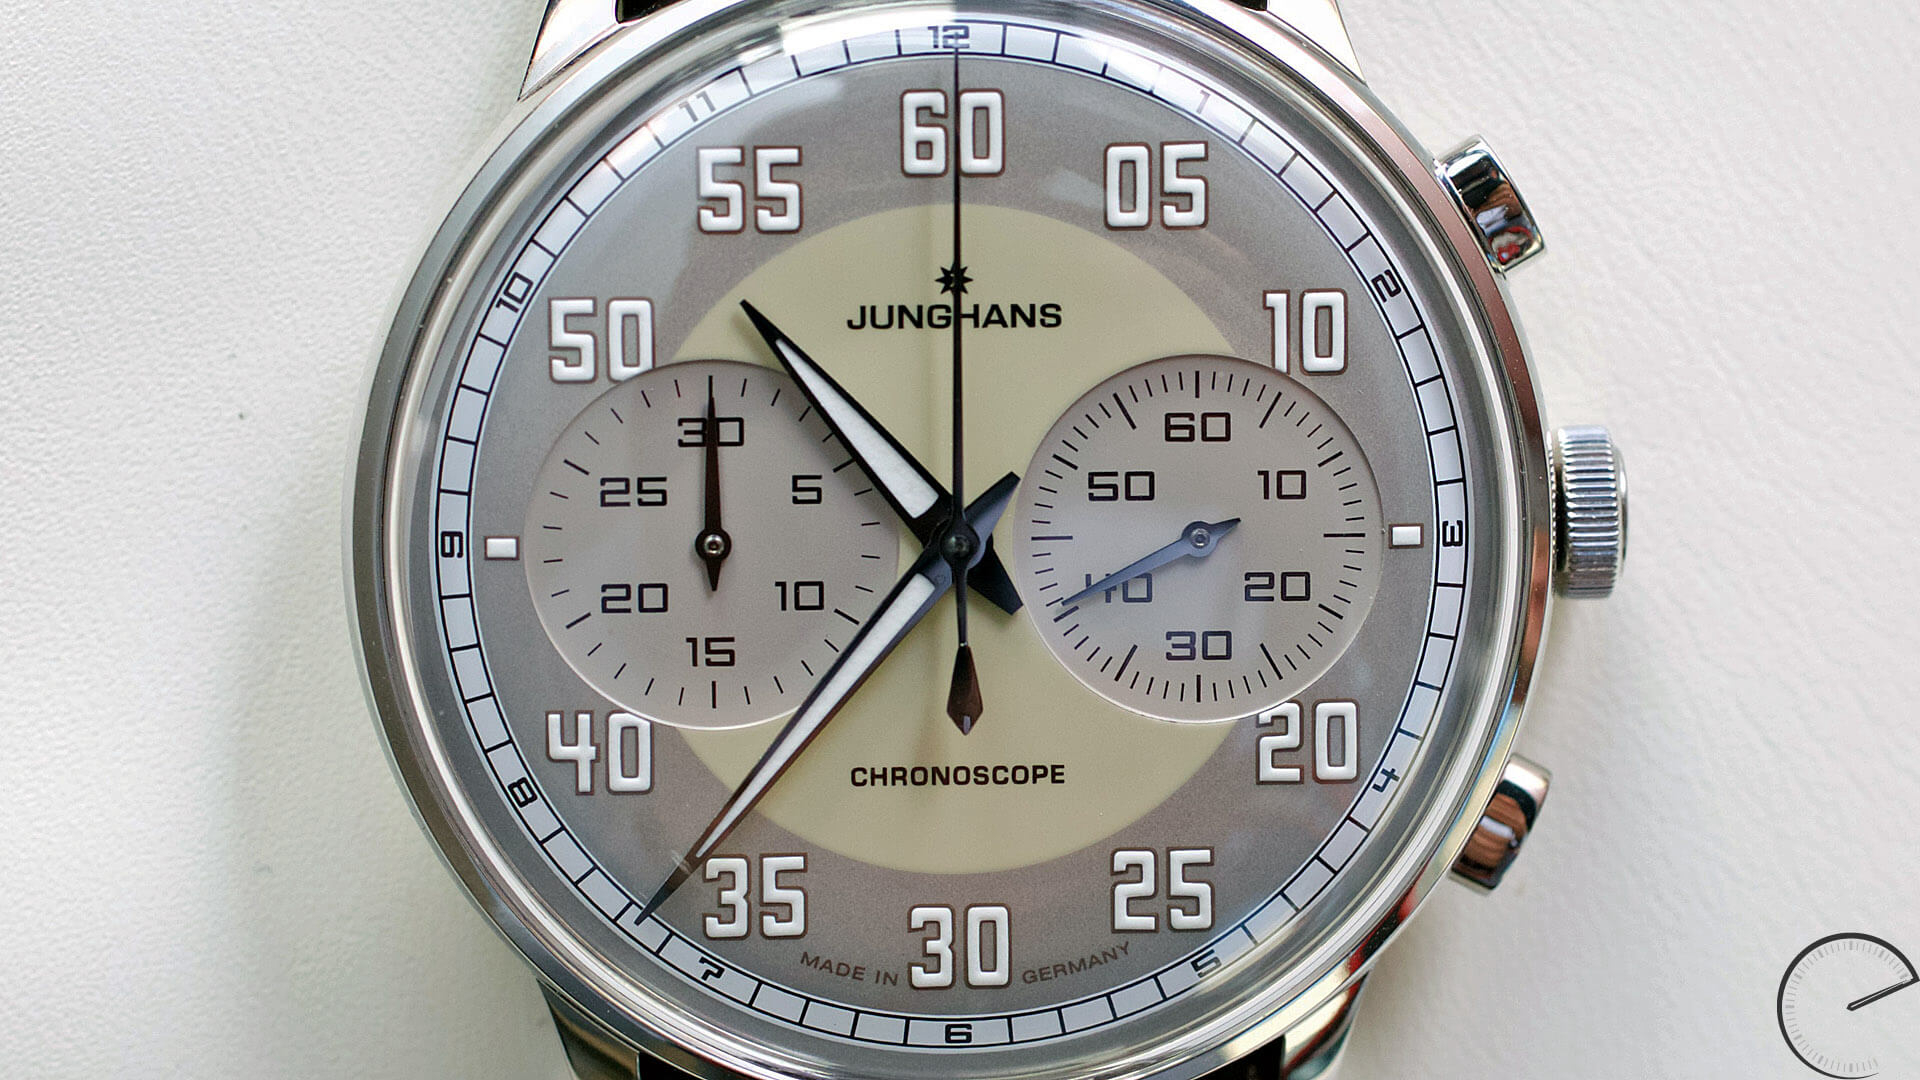 Junghans_Meister_Driver_Chronoscope_dial - ESCAPEMENT magazine - watch blog by Angus Davies